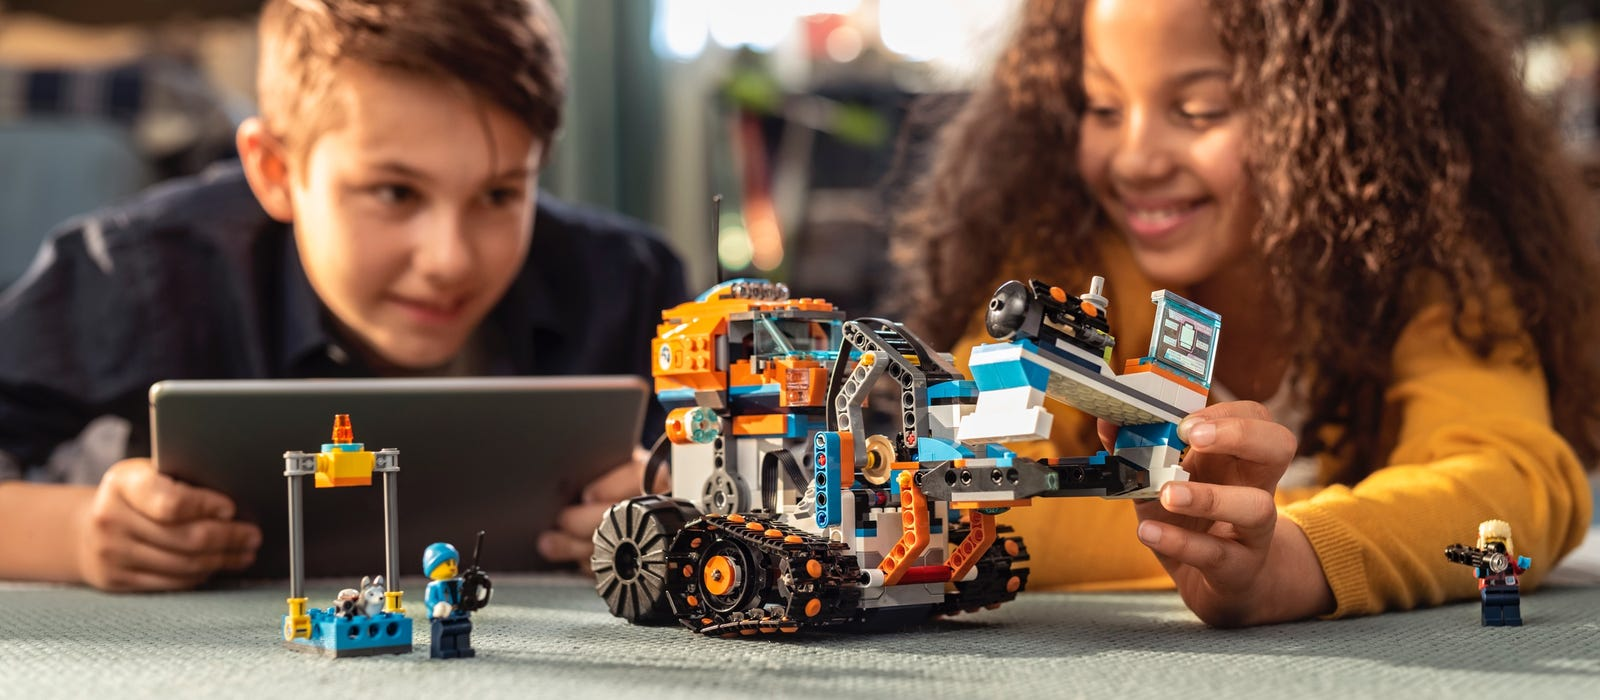 Kids coding with BOOST together